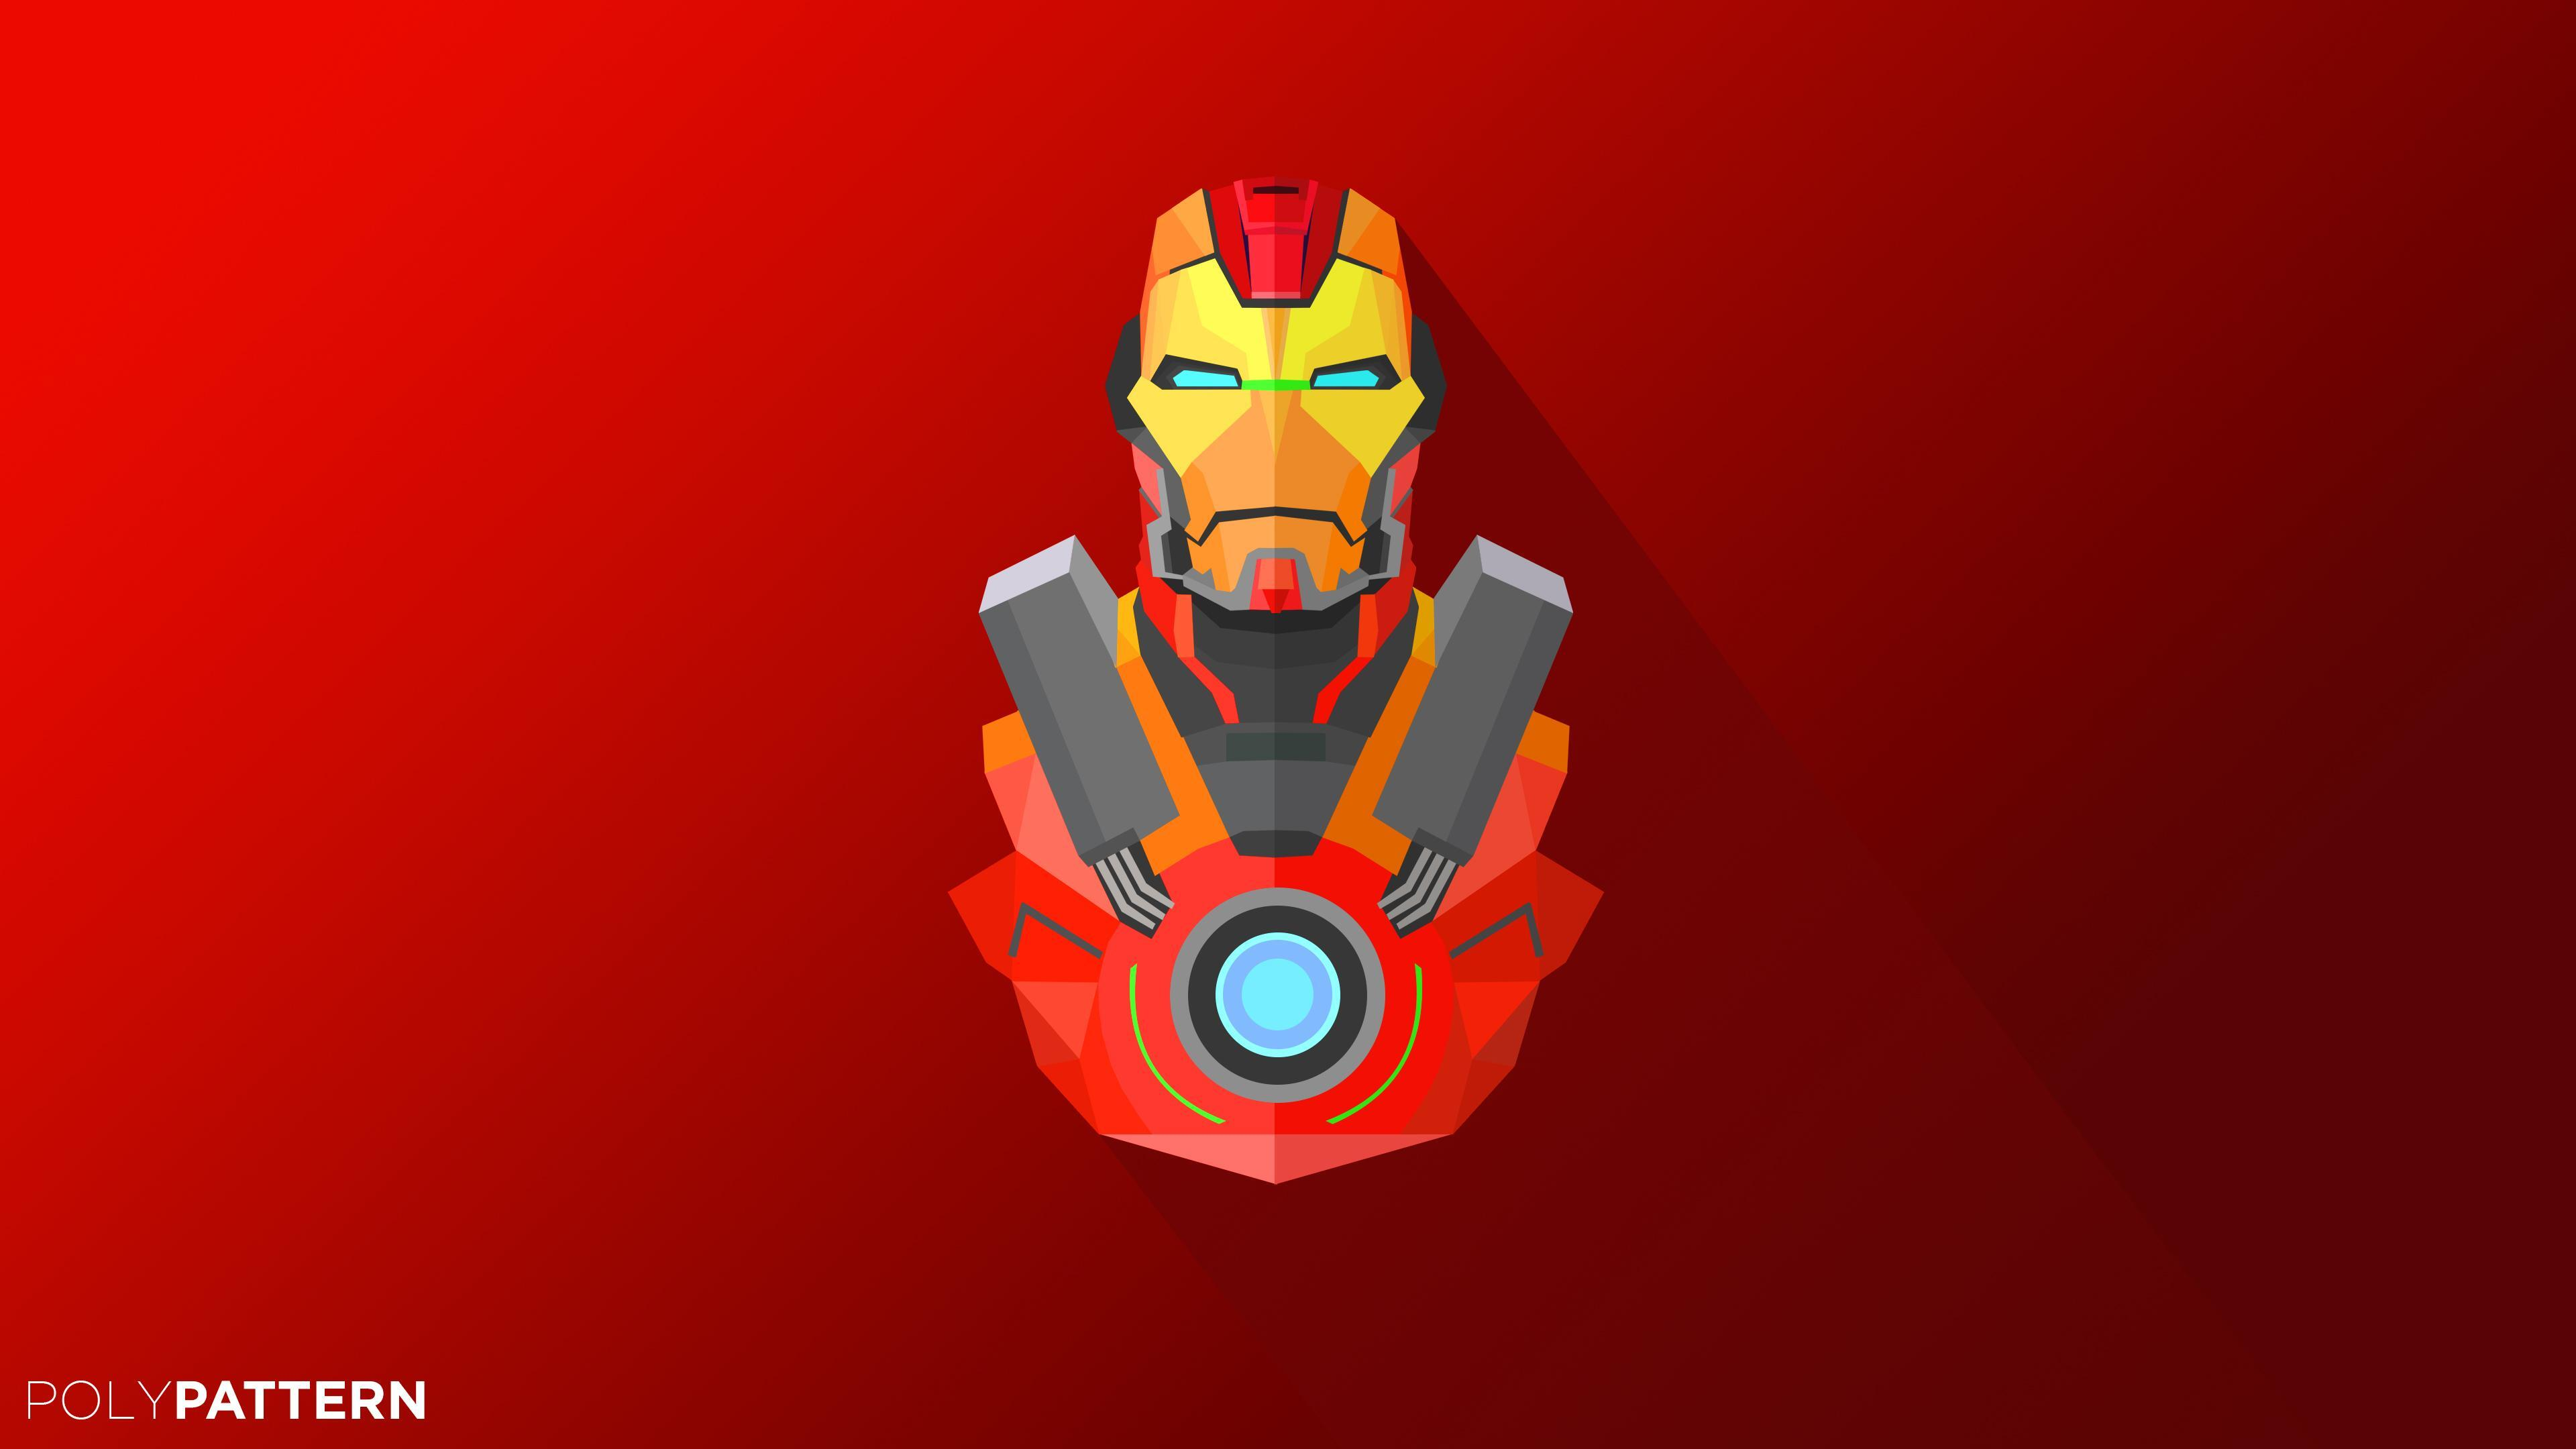 iron-man-heartbreaker-artwork-4k-lu.jpg